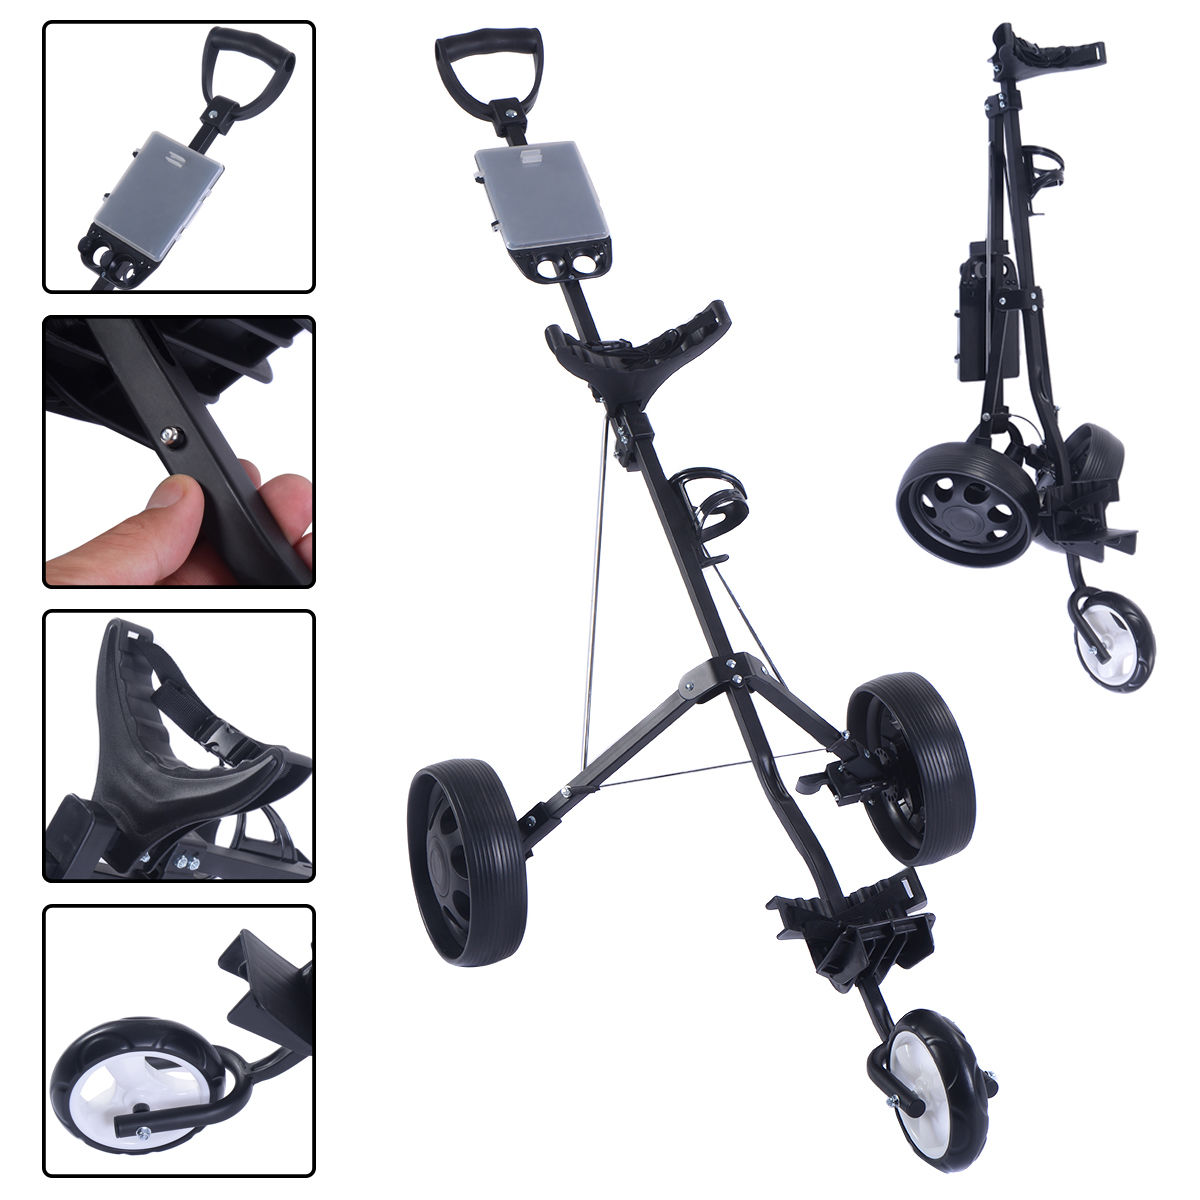 Foldable 3 Wheel Push Pull Golf Cart /Cup Holder Trolley Swivel Steel Light SP35190